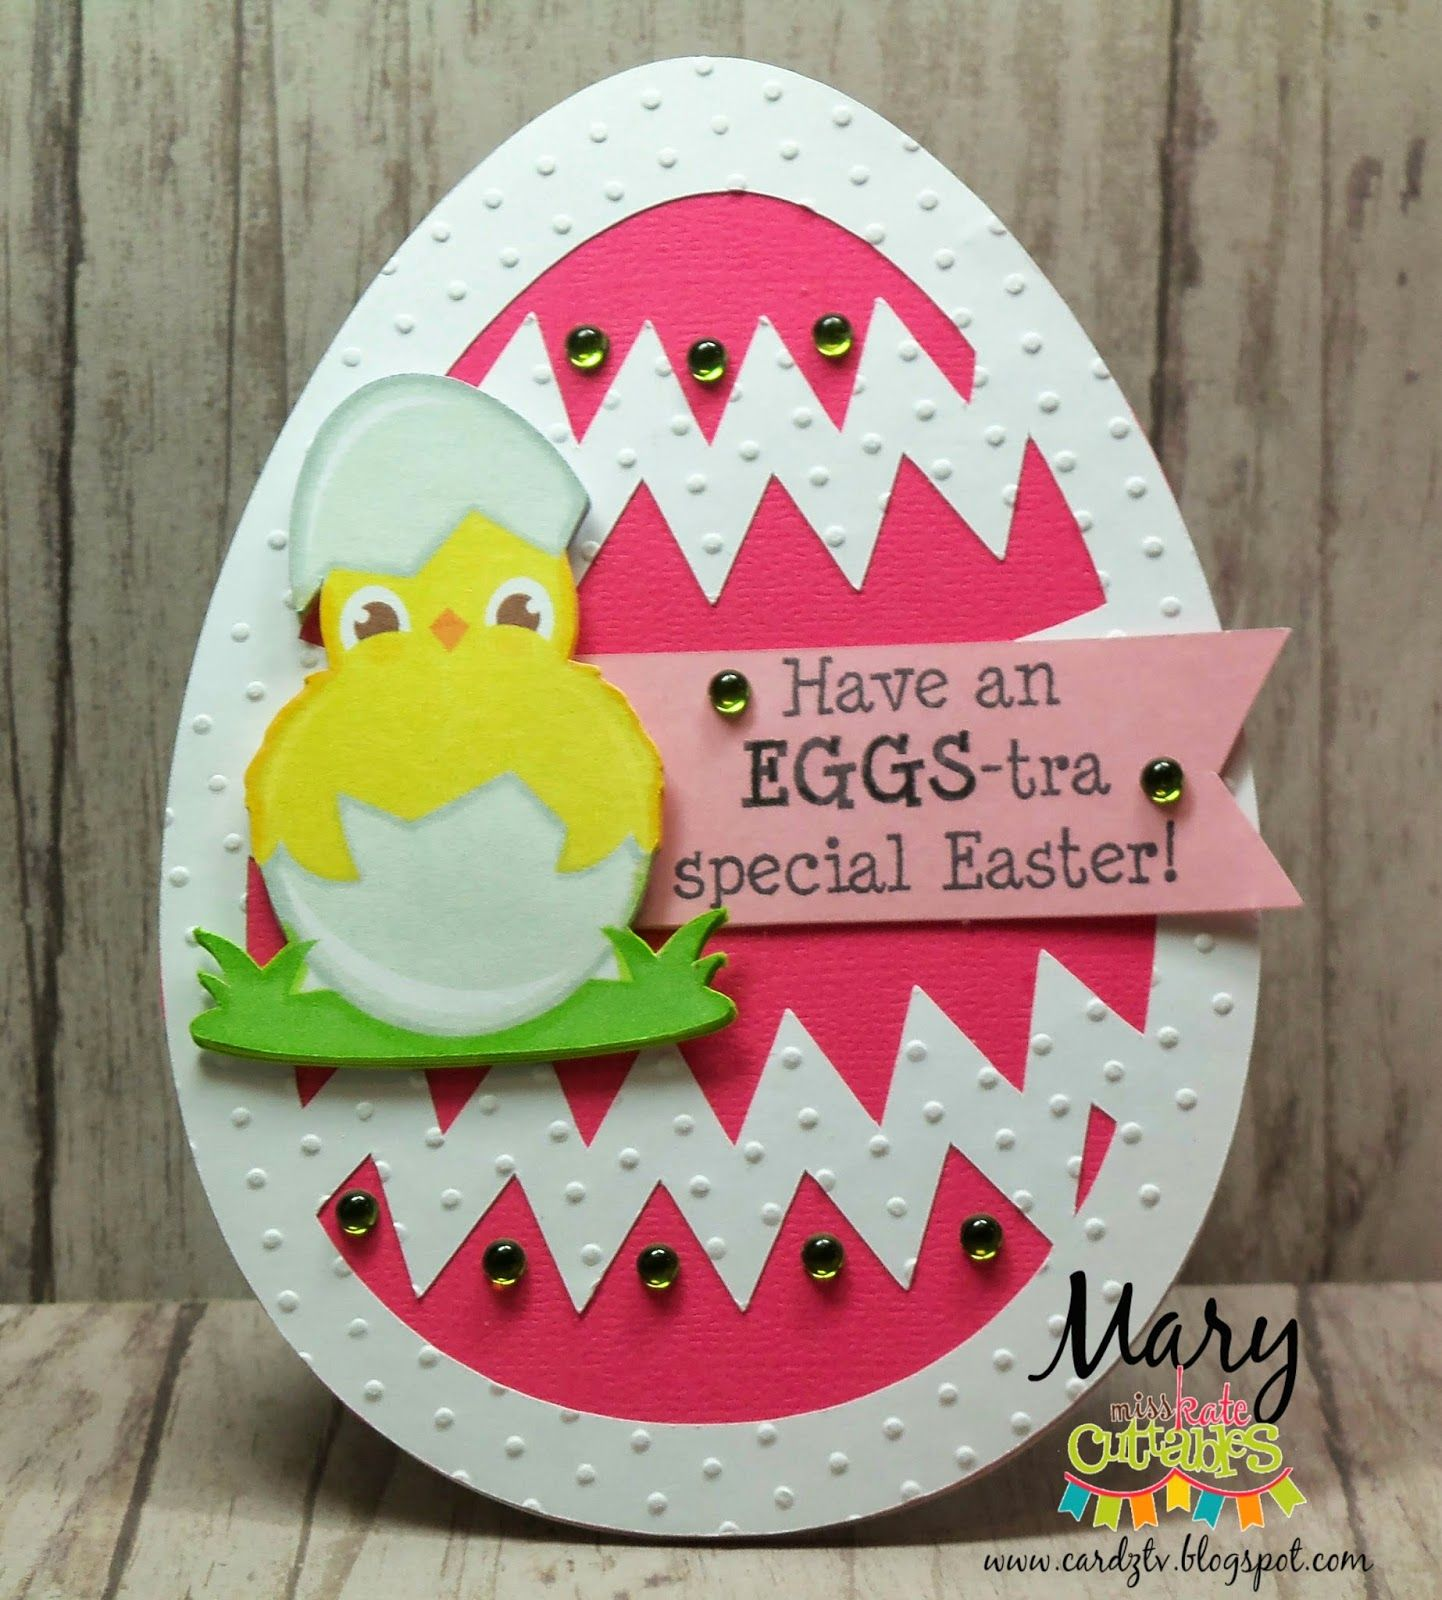 """CARDZ TV: """"HAVE AN EGGS-TRA SPECIAL EASTER!'"""